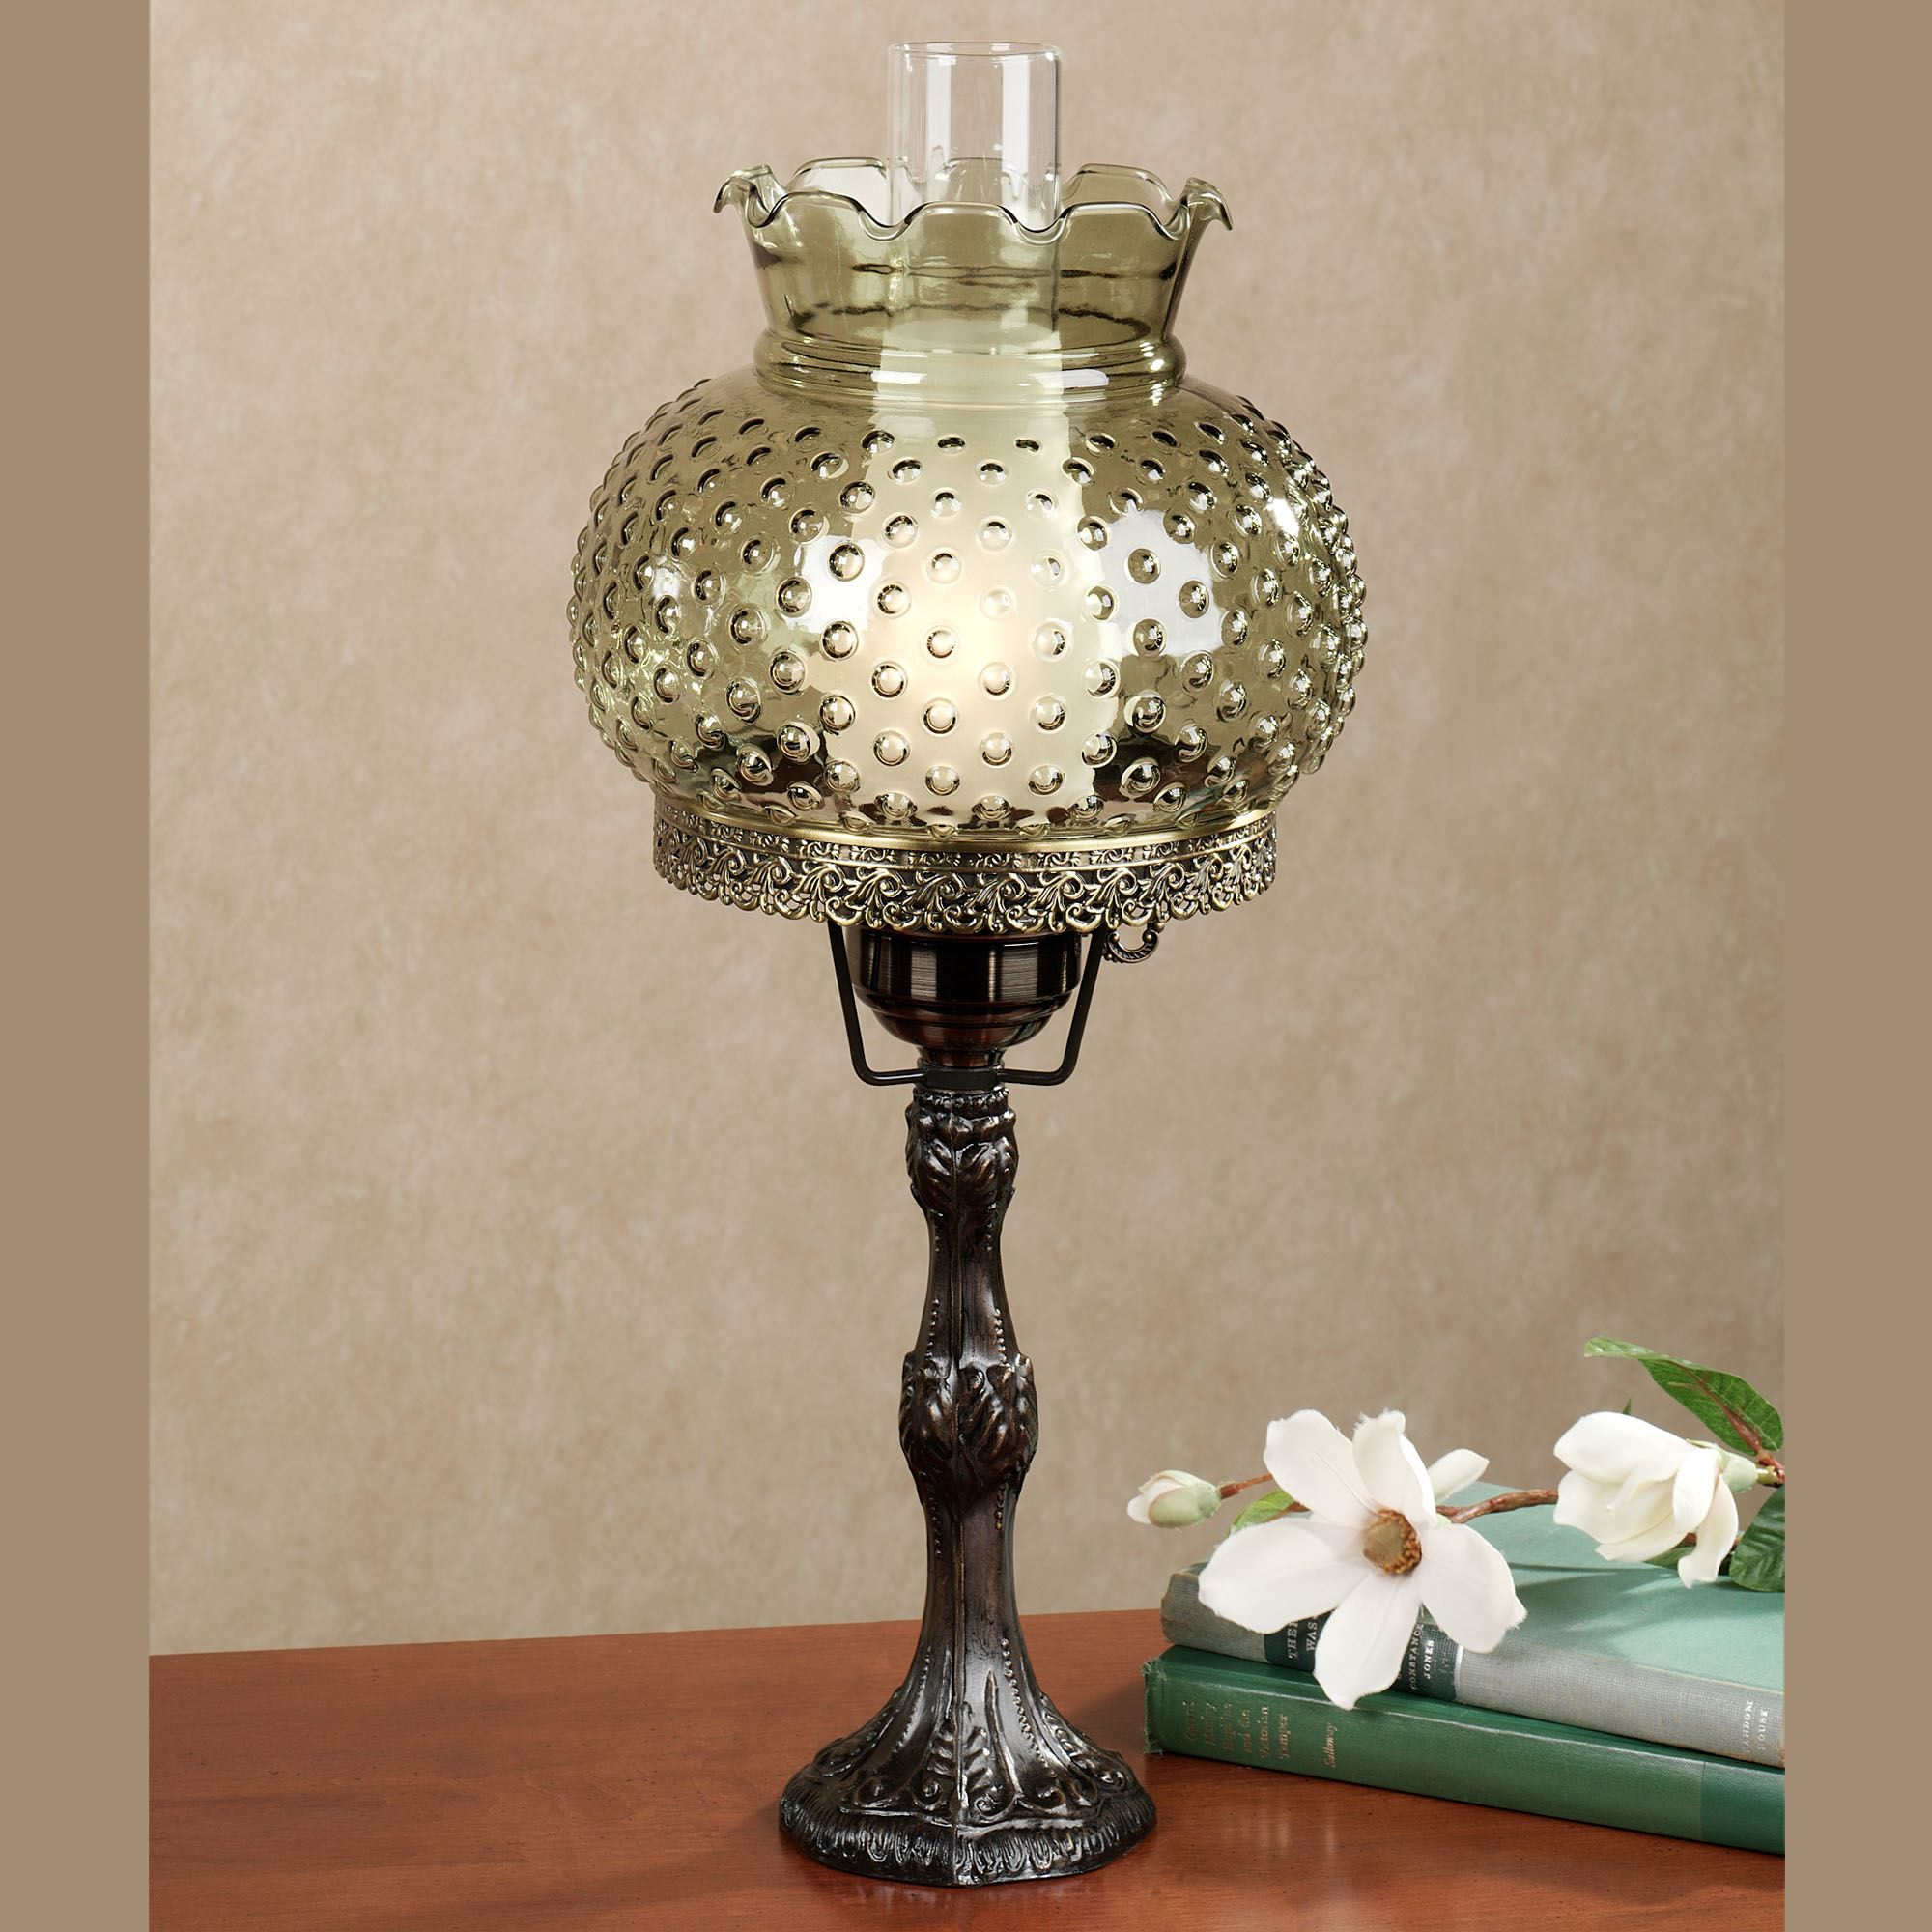 Ordinaire Ciara Hobnail Table Lamp. Touch To Zoom